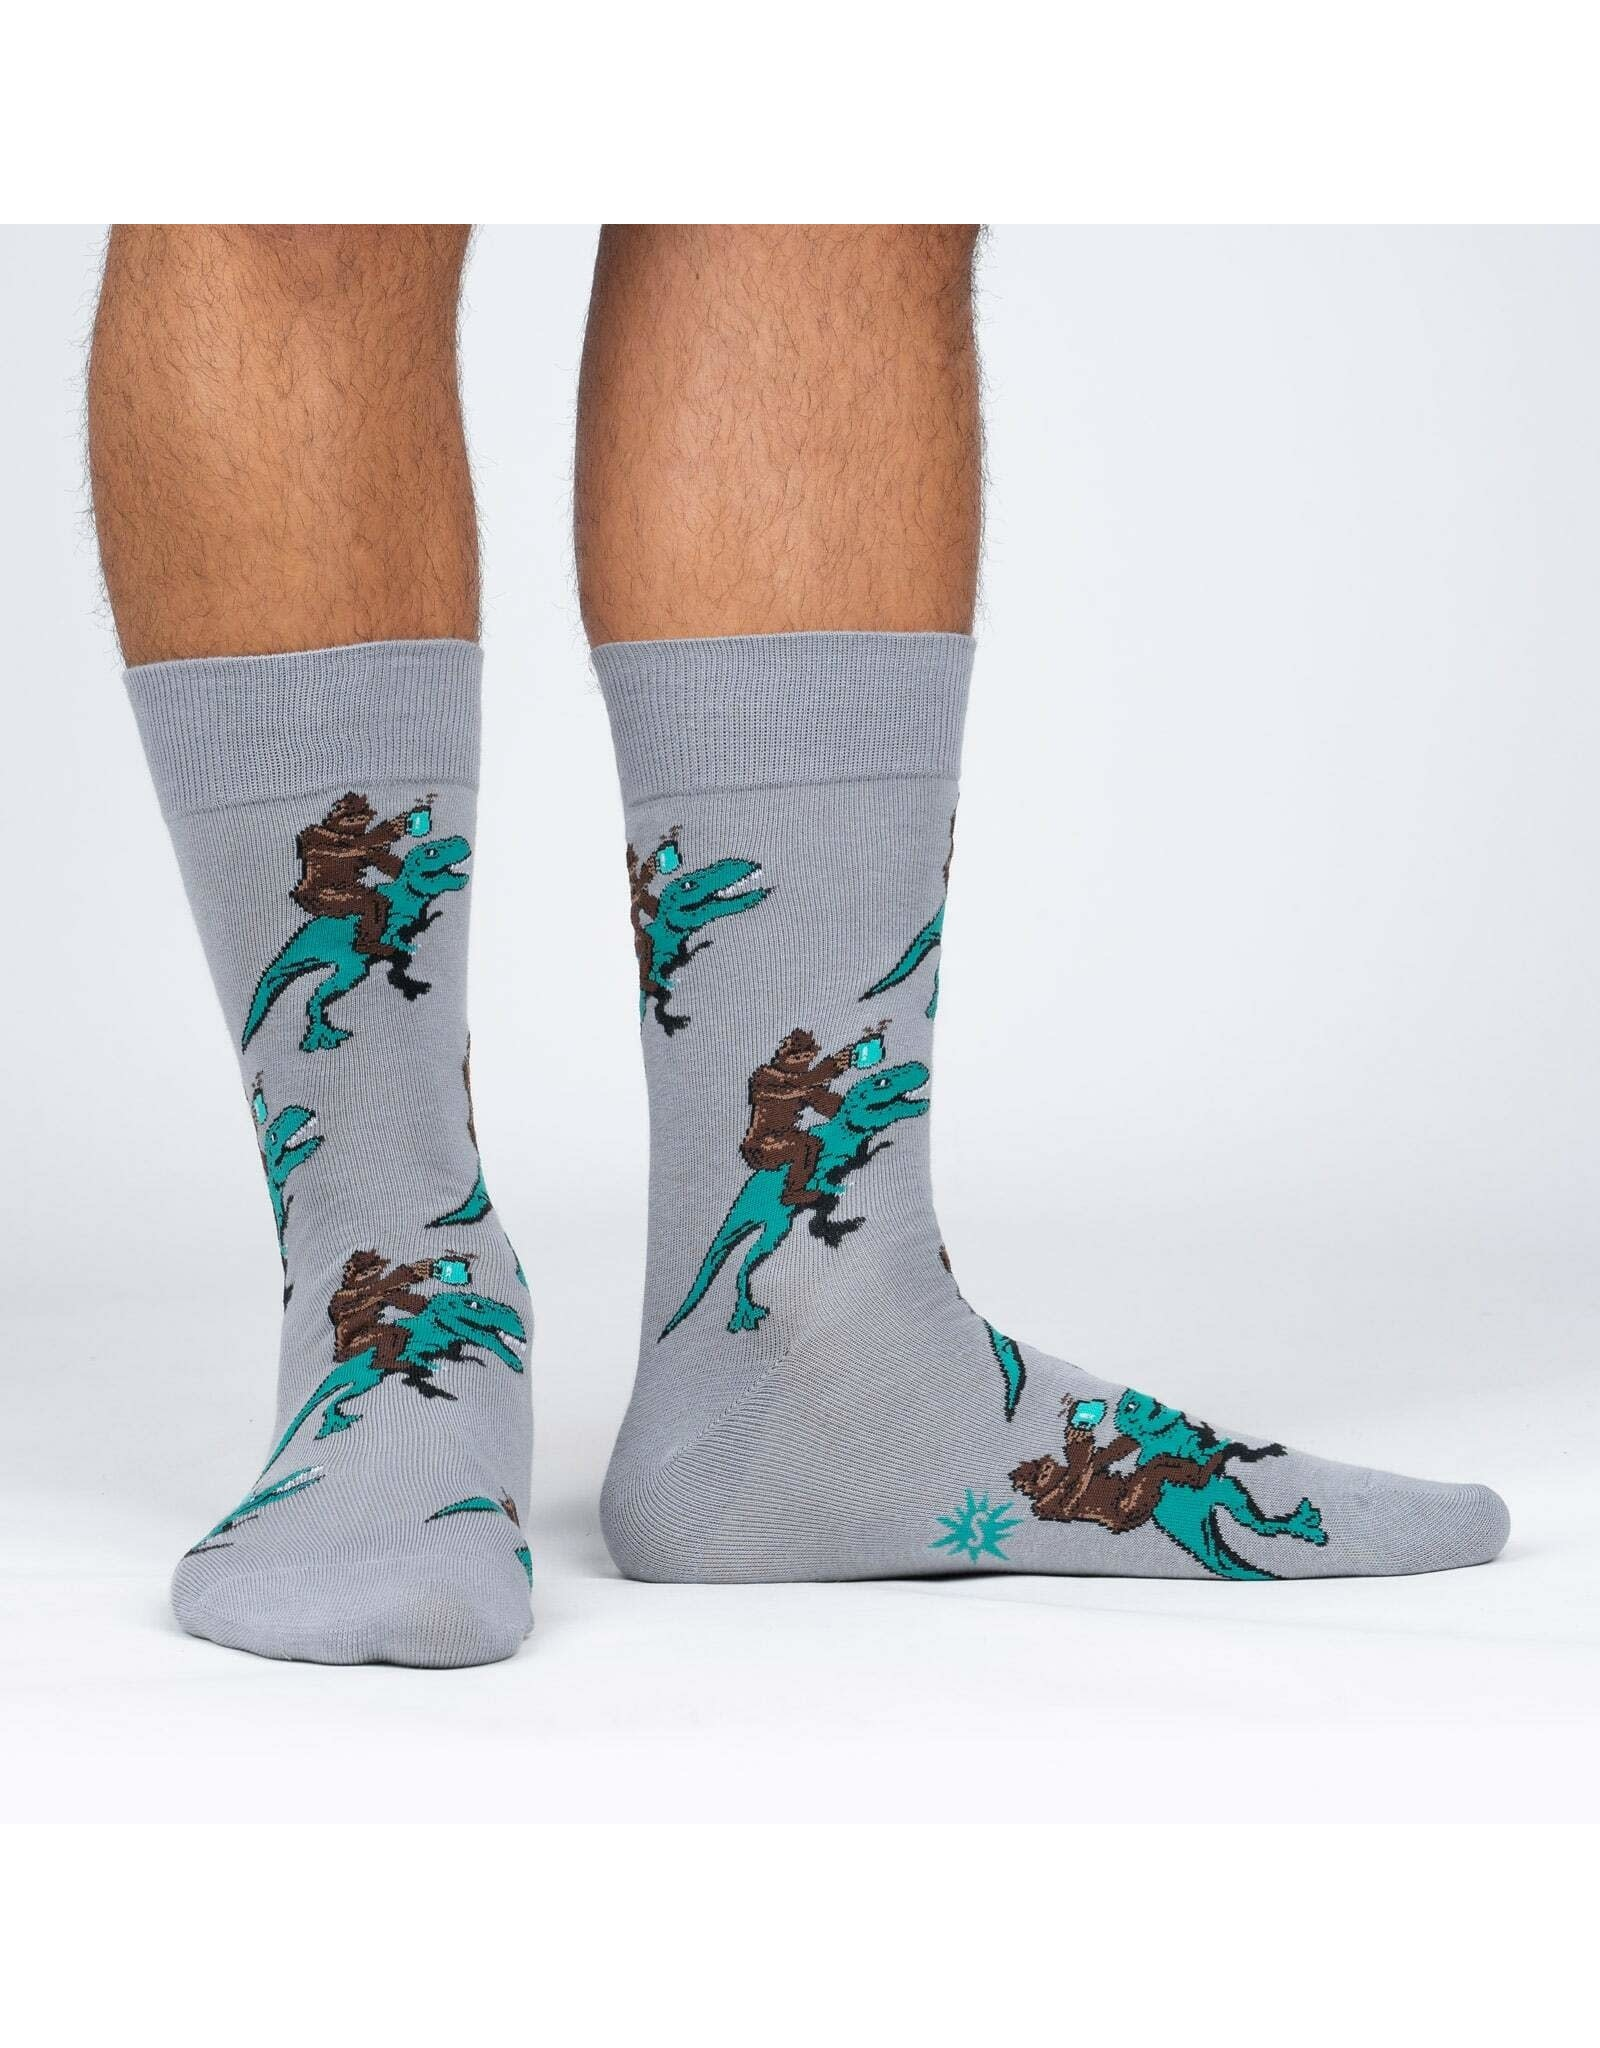 SOCK IT TO ME - Men's Cup of Ambition Crew Socks